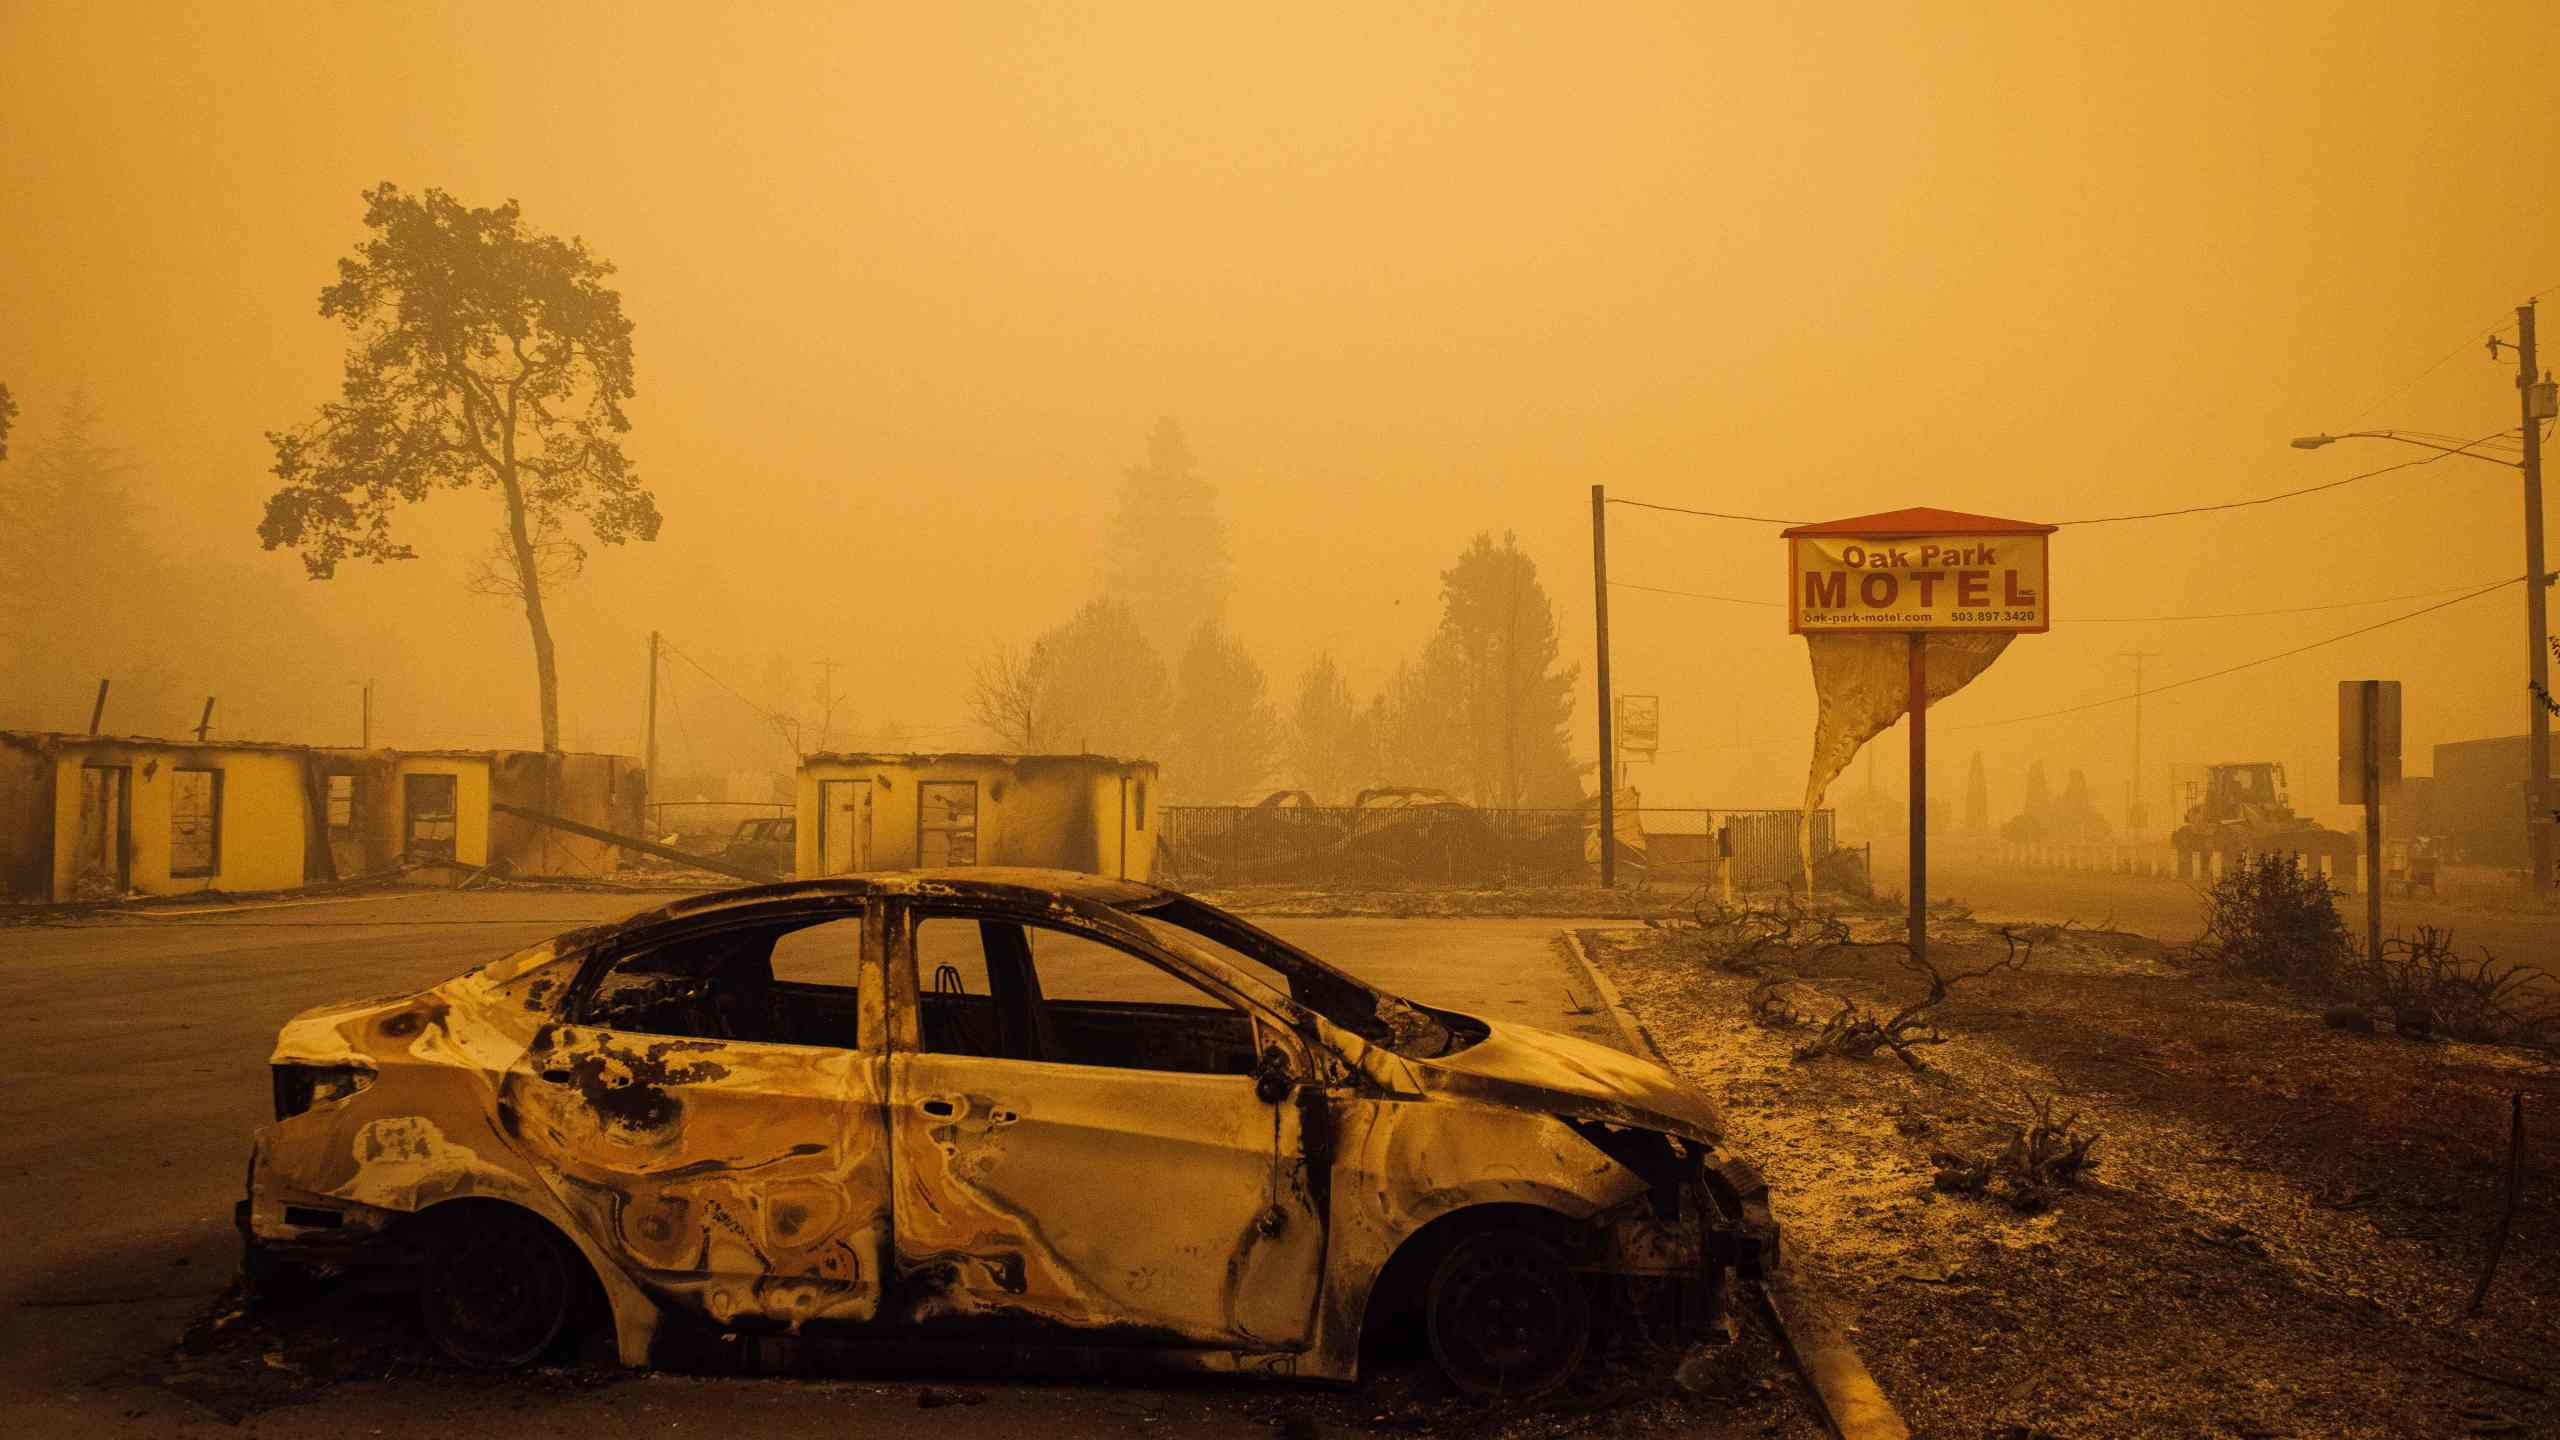 A charred vehicle is seen in the parking lot of the burned Oak Park Motel after the passage of the Santiam Fire in Gates, Oregon, on Sept. 10, 2020. (KATHRYN ELSESSER/AFP via Getty Images)